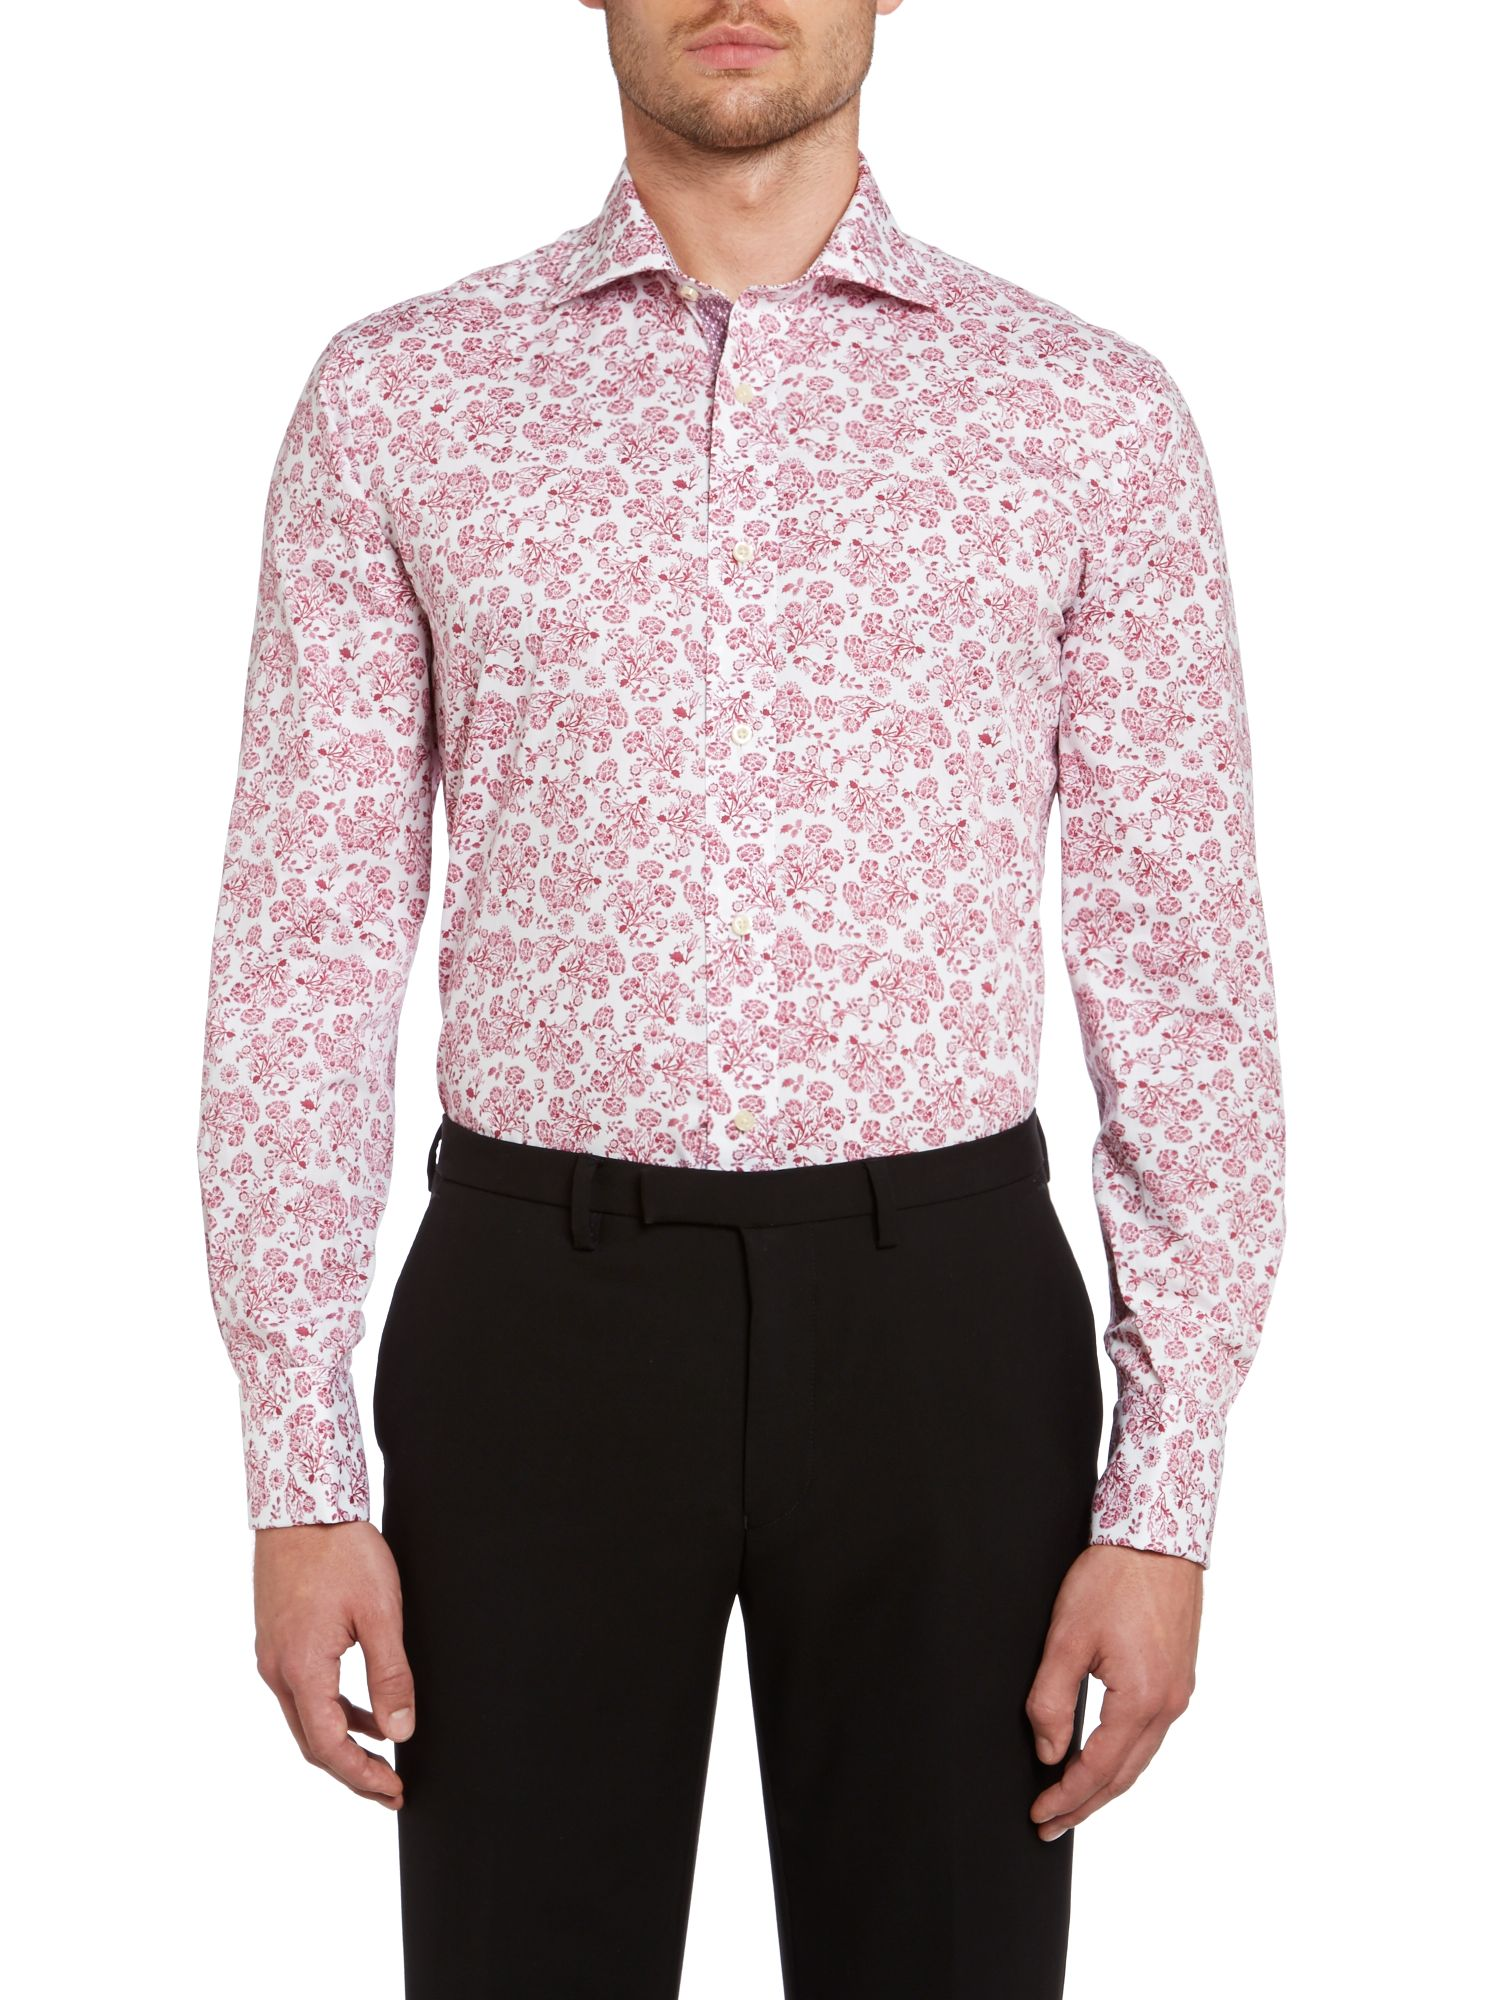 Pluton regular fit double cuff jacquard shirt